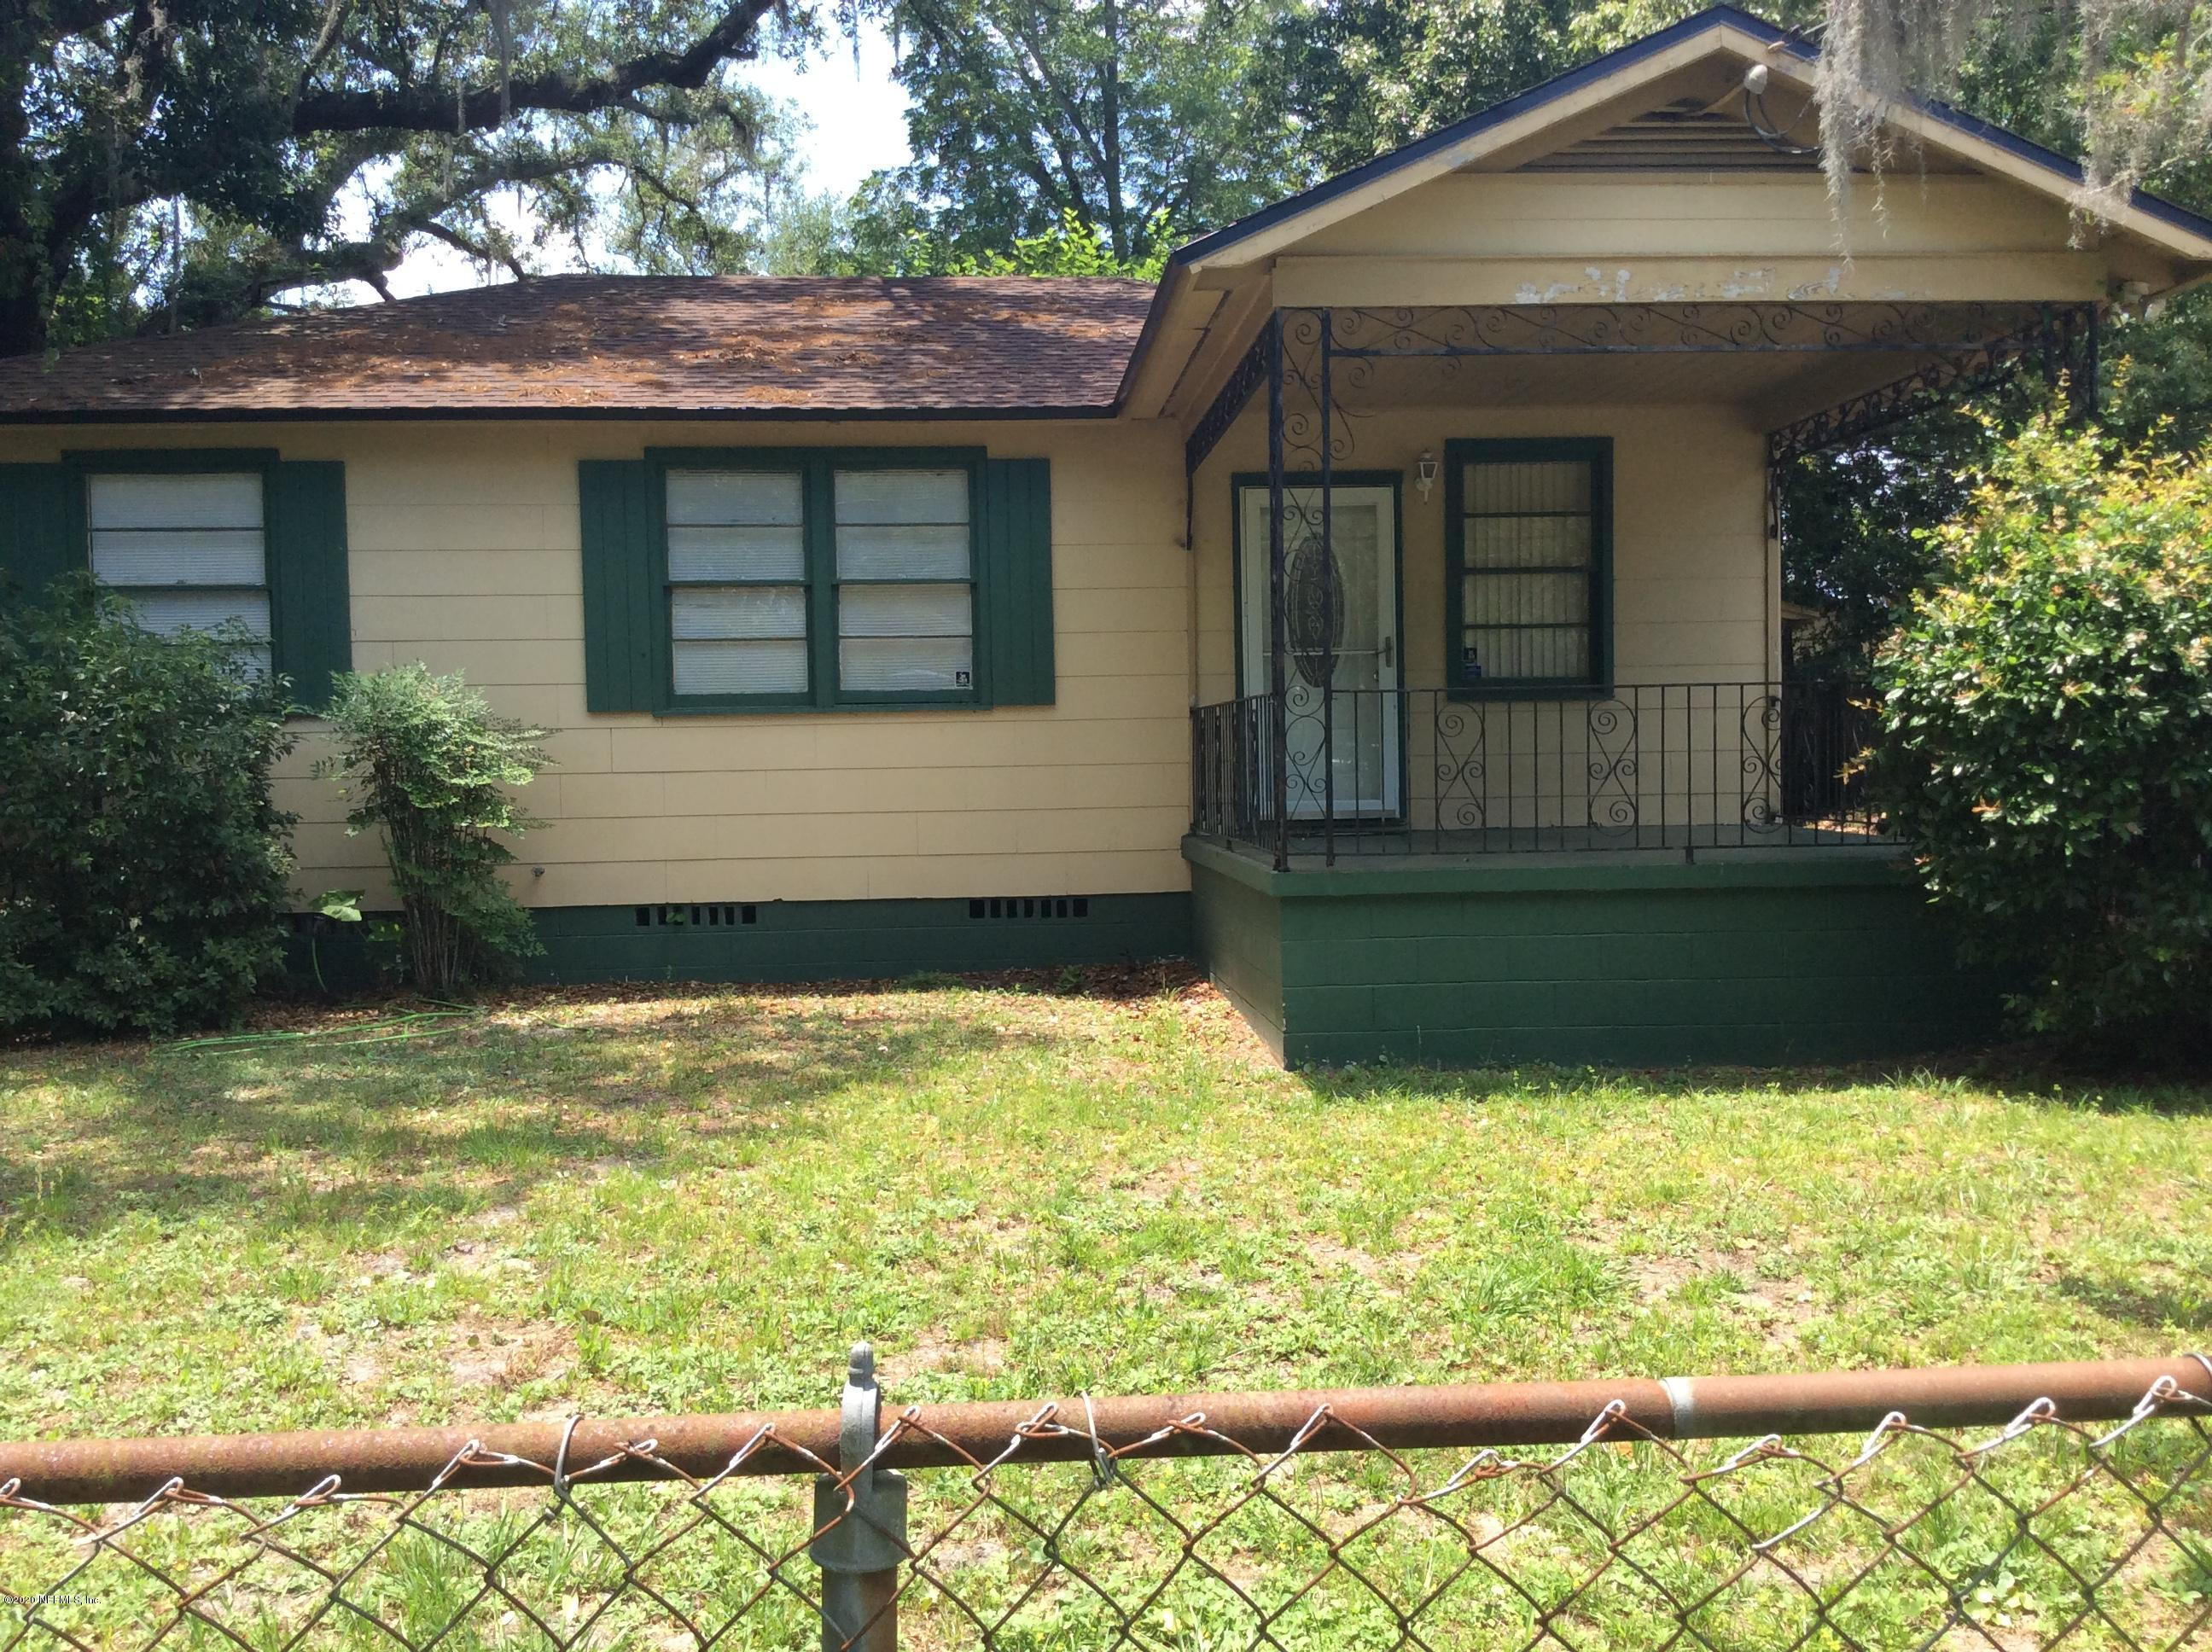 9054 POLK, JACKSONVILLE, FLORIDA 32208, 3 Bedrooms Bedrooms, ,1 BathroomBathrooms,Residential,For sale,POLK,1057682